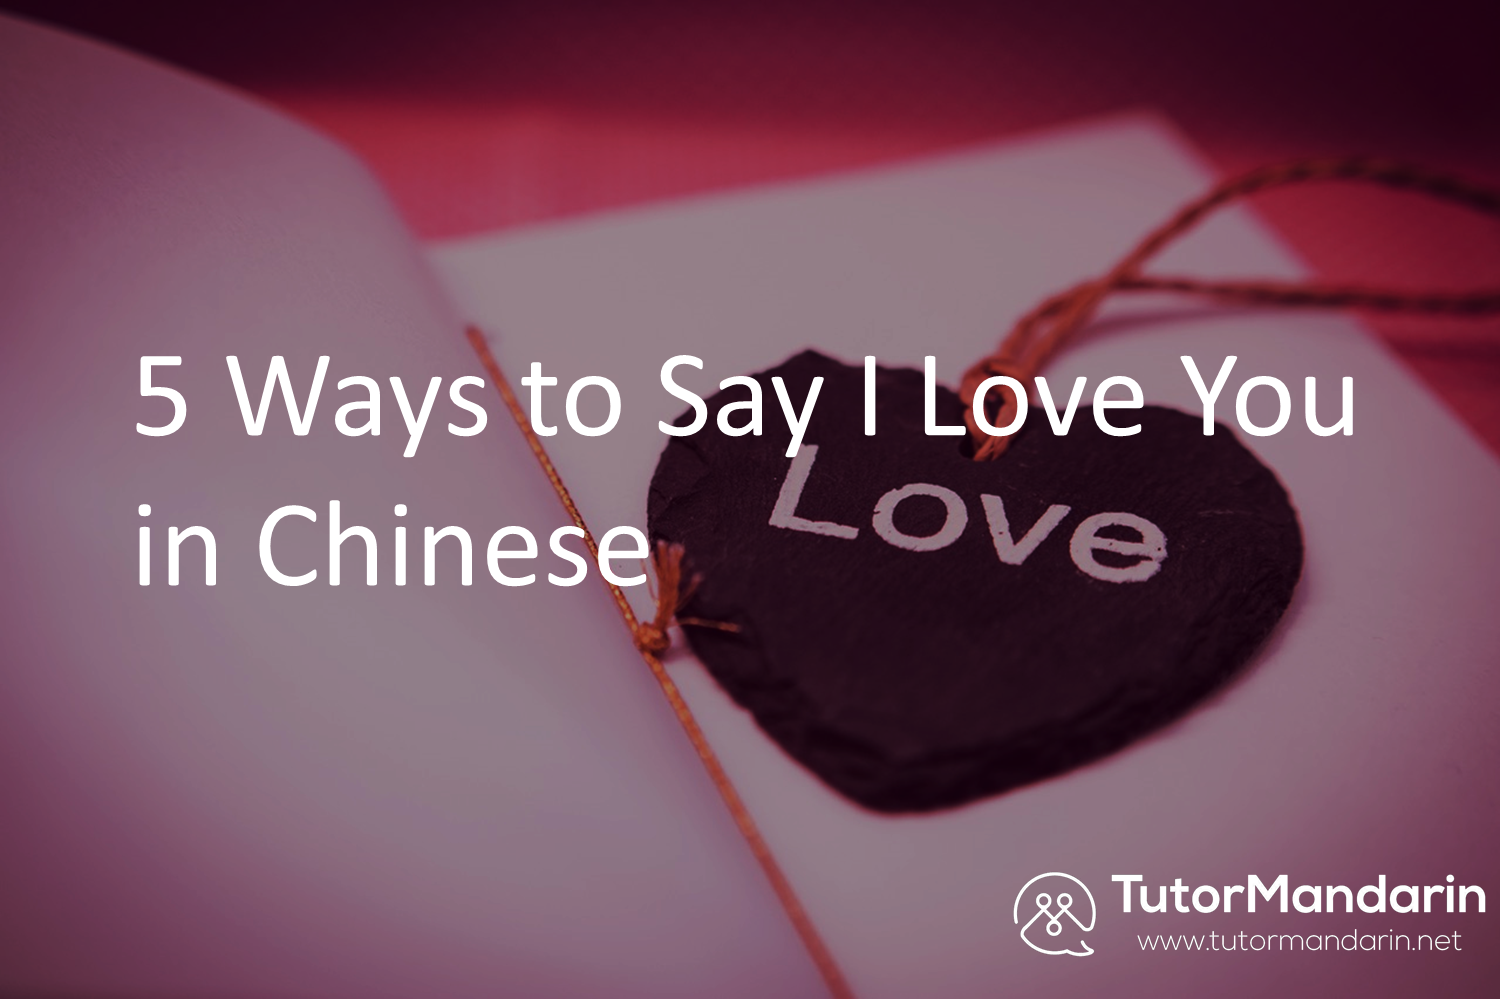 5 ways to say I love you in Chinese with tutormandarin 1-on-1 online chinese lesson